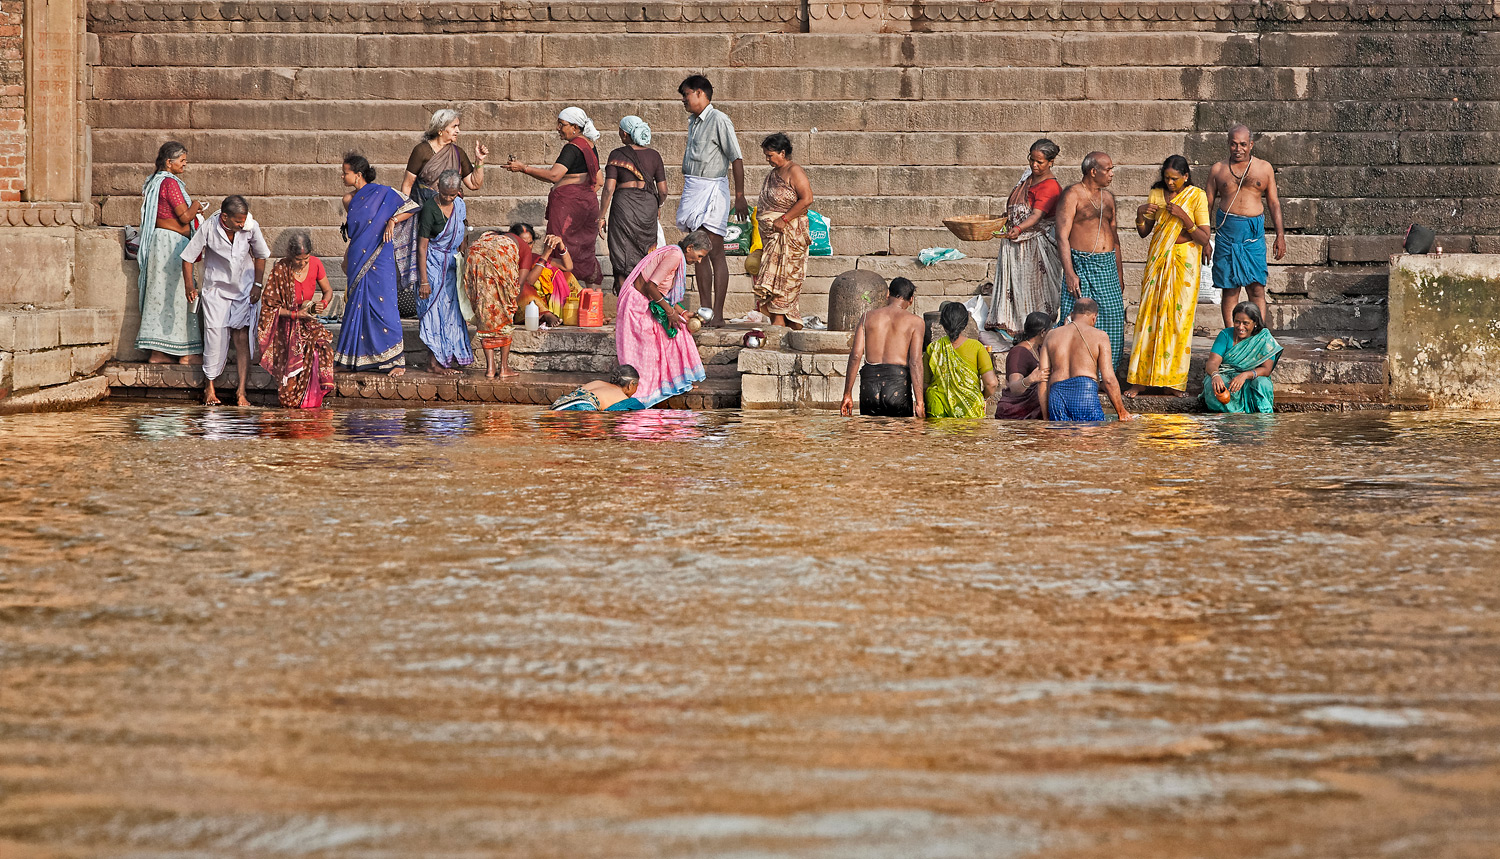 Family together on the ghats, Varanasi, India